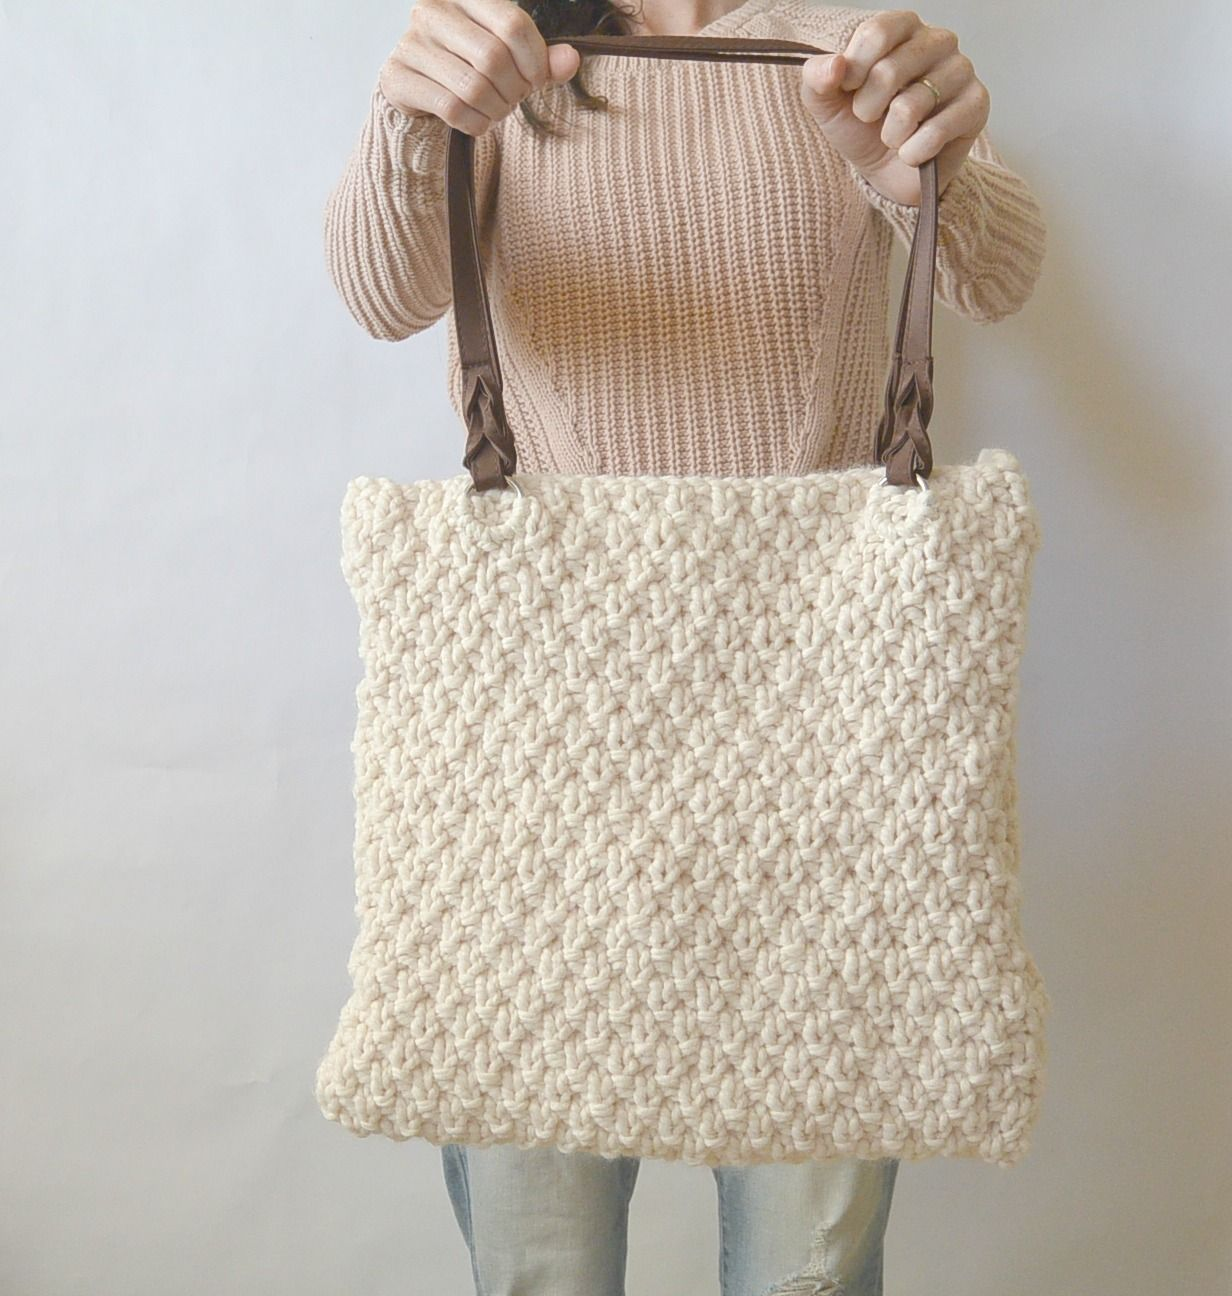 Aspen Easy Free knitting bag pattern | Mina stickningar | Pinterest ...